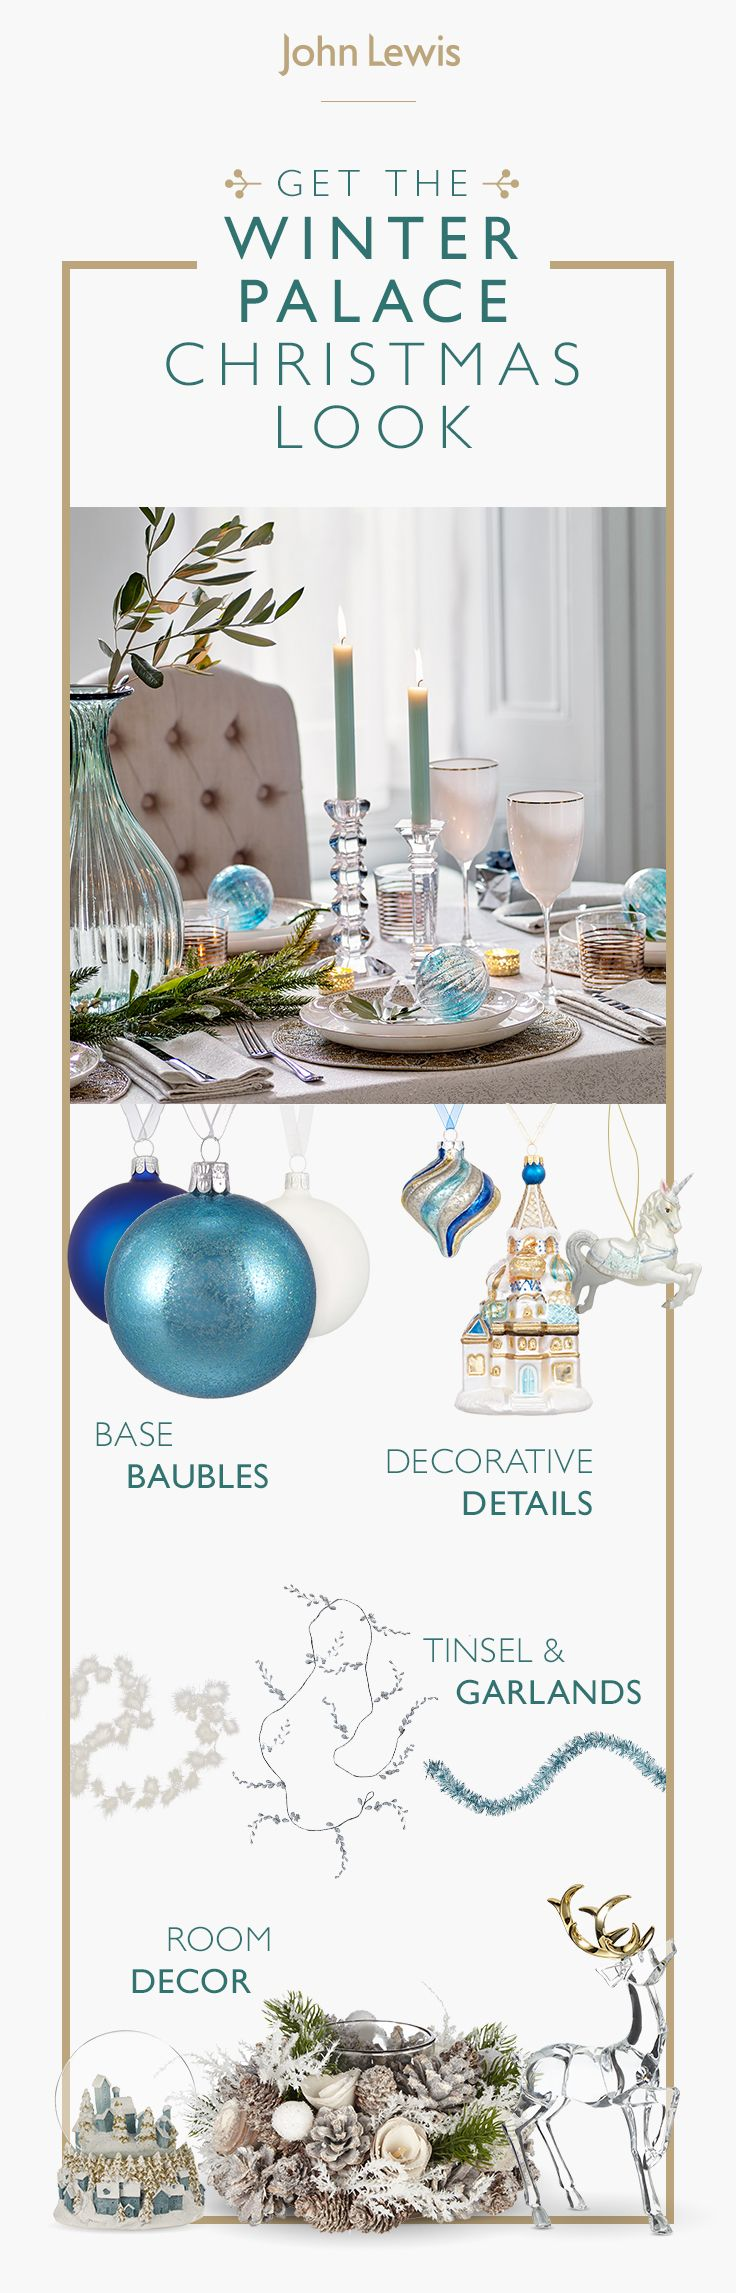 The magic of Winter Palace is captured in boutique glamour. Feathered peacock clips, sparkling diamante baubles and metallic starburst decorations provide a refined, opulent look throughout, with touches of tradition re-imagined in the form of silver leaf sprays and charming little Babushka baubles.